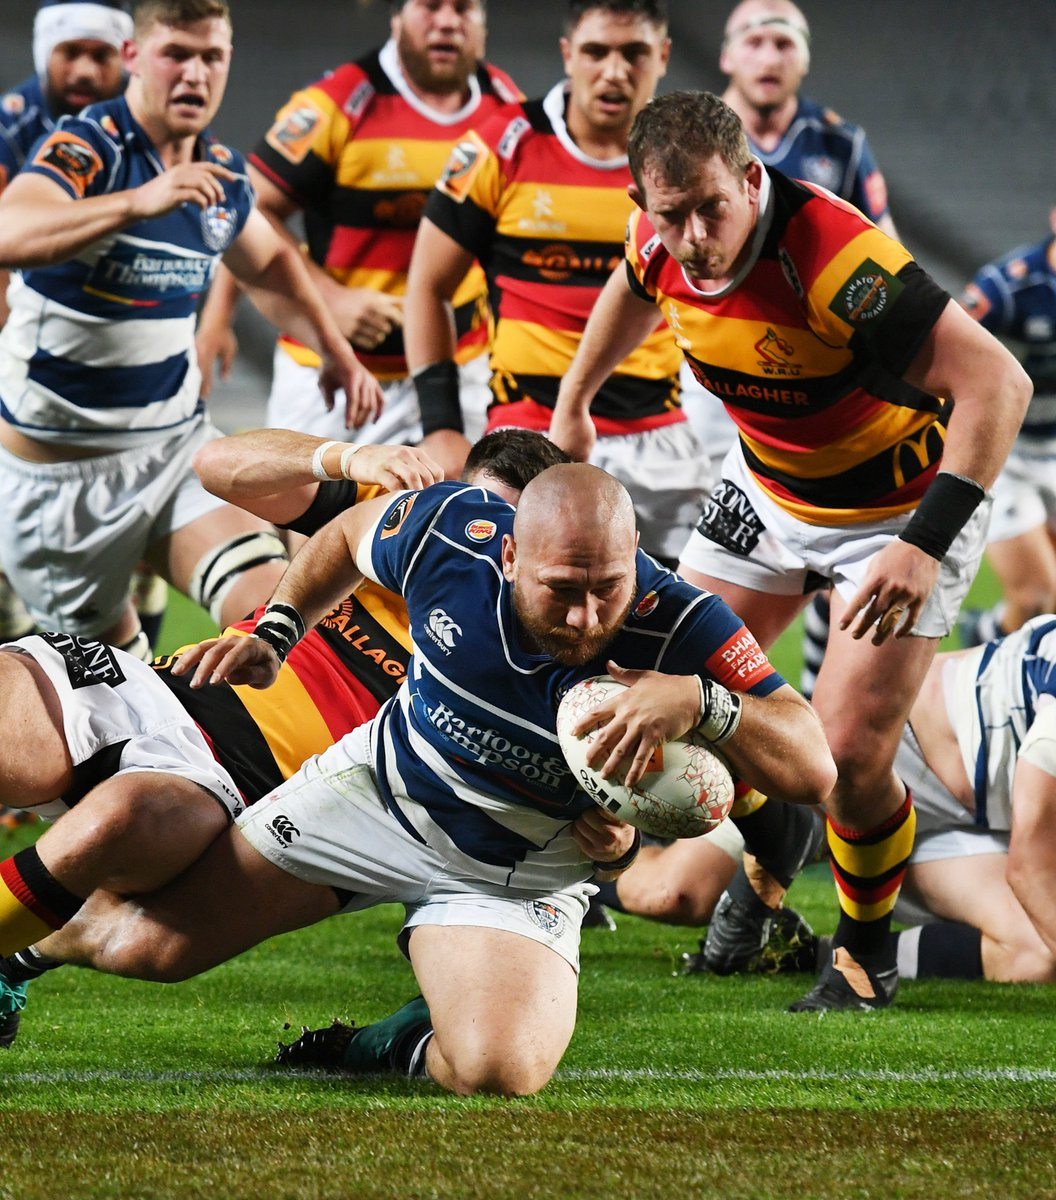 AucklandRugby